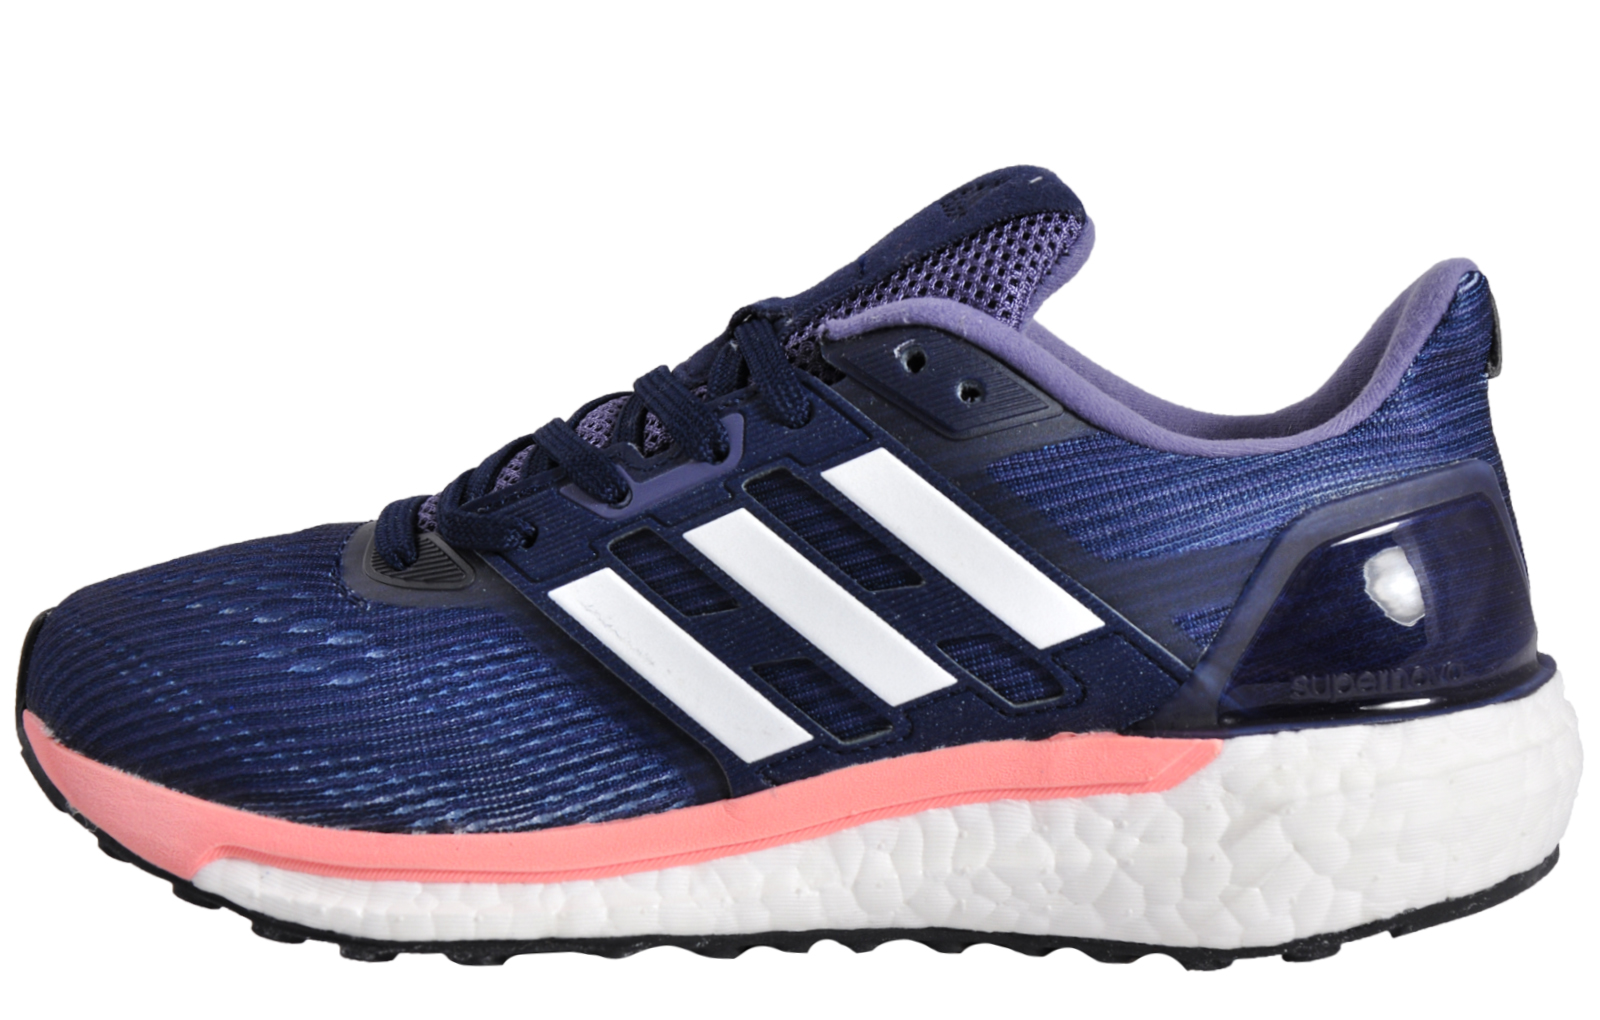 new concept 843b7 7ce0d Cheap Running Shoes for Women UK – Free UK Delivery ...